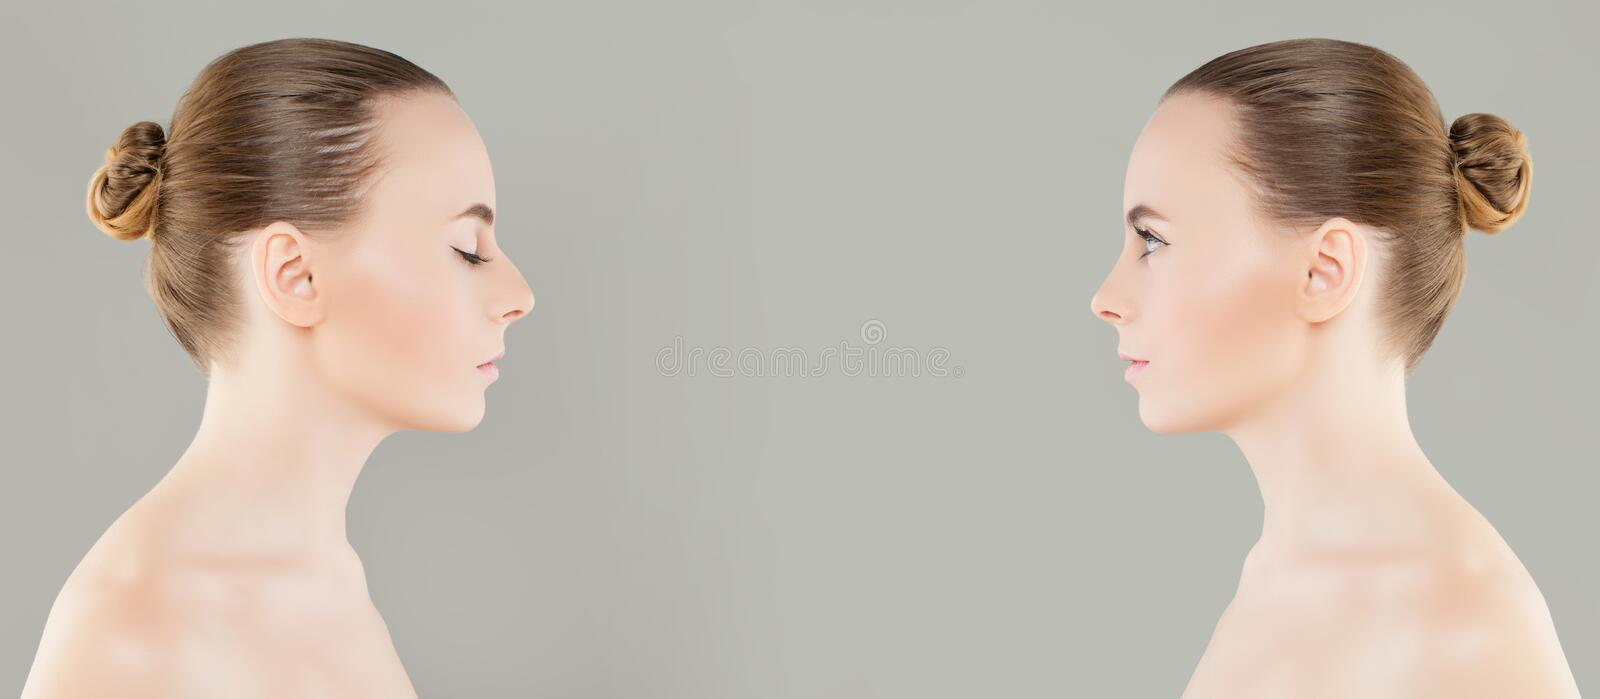 Female Nose Before and After Cosmetic Surgery or Retouch. Rhinoplasty, Beauty and Cosmetology Concept royalty free stock photos